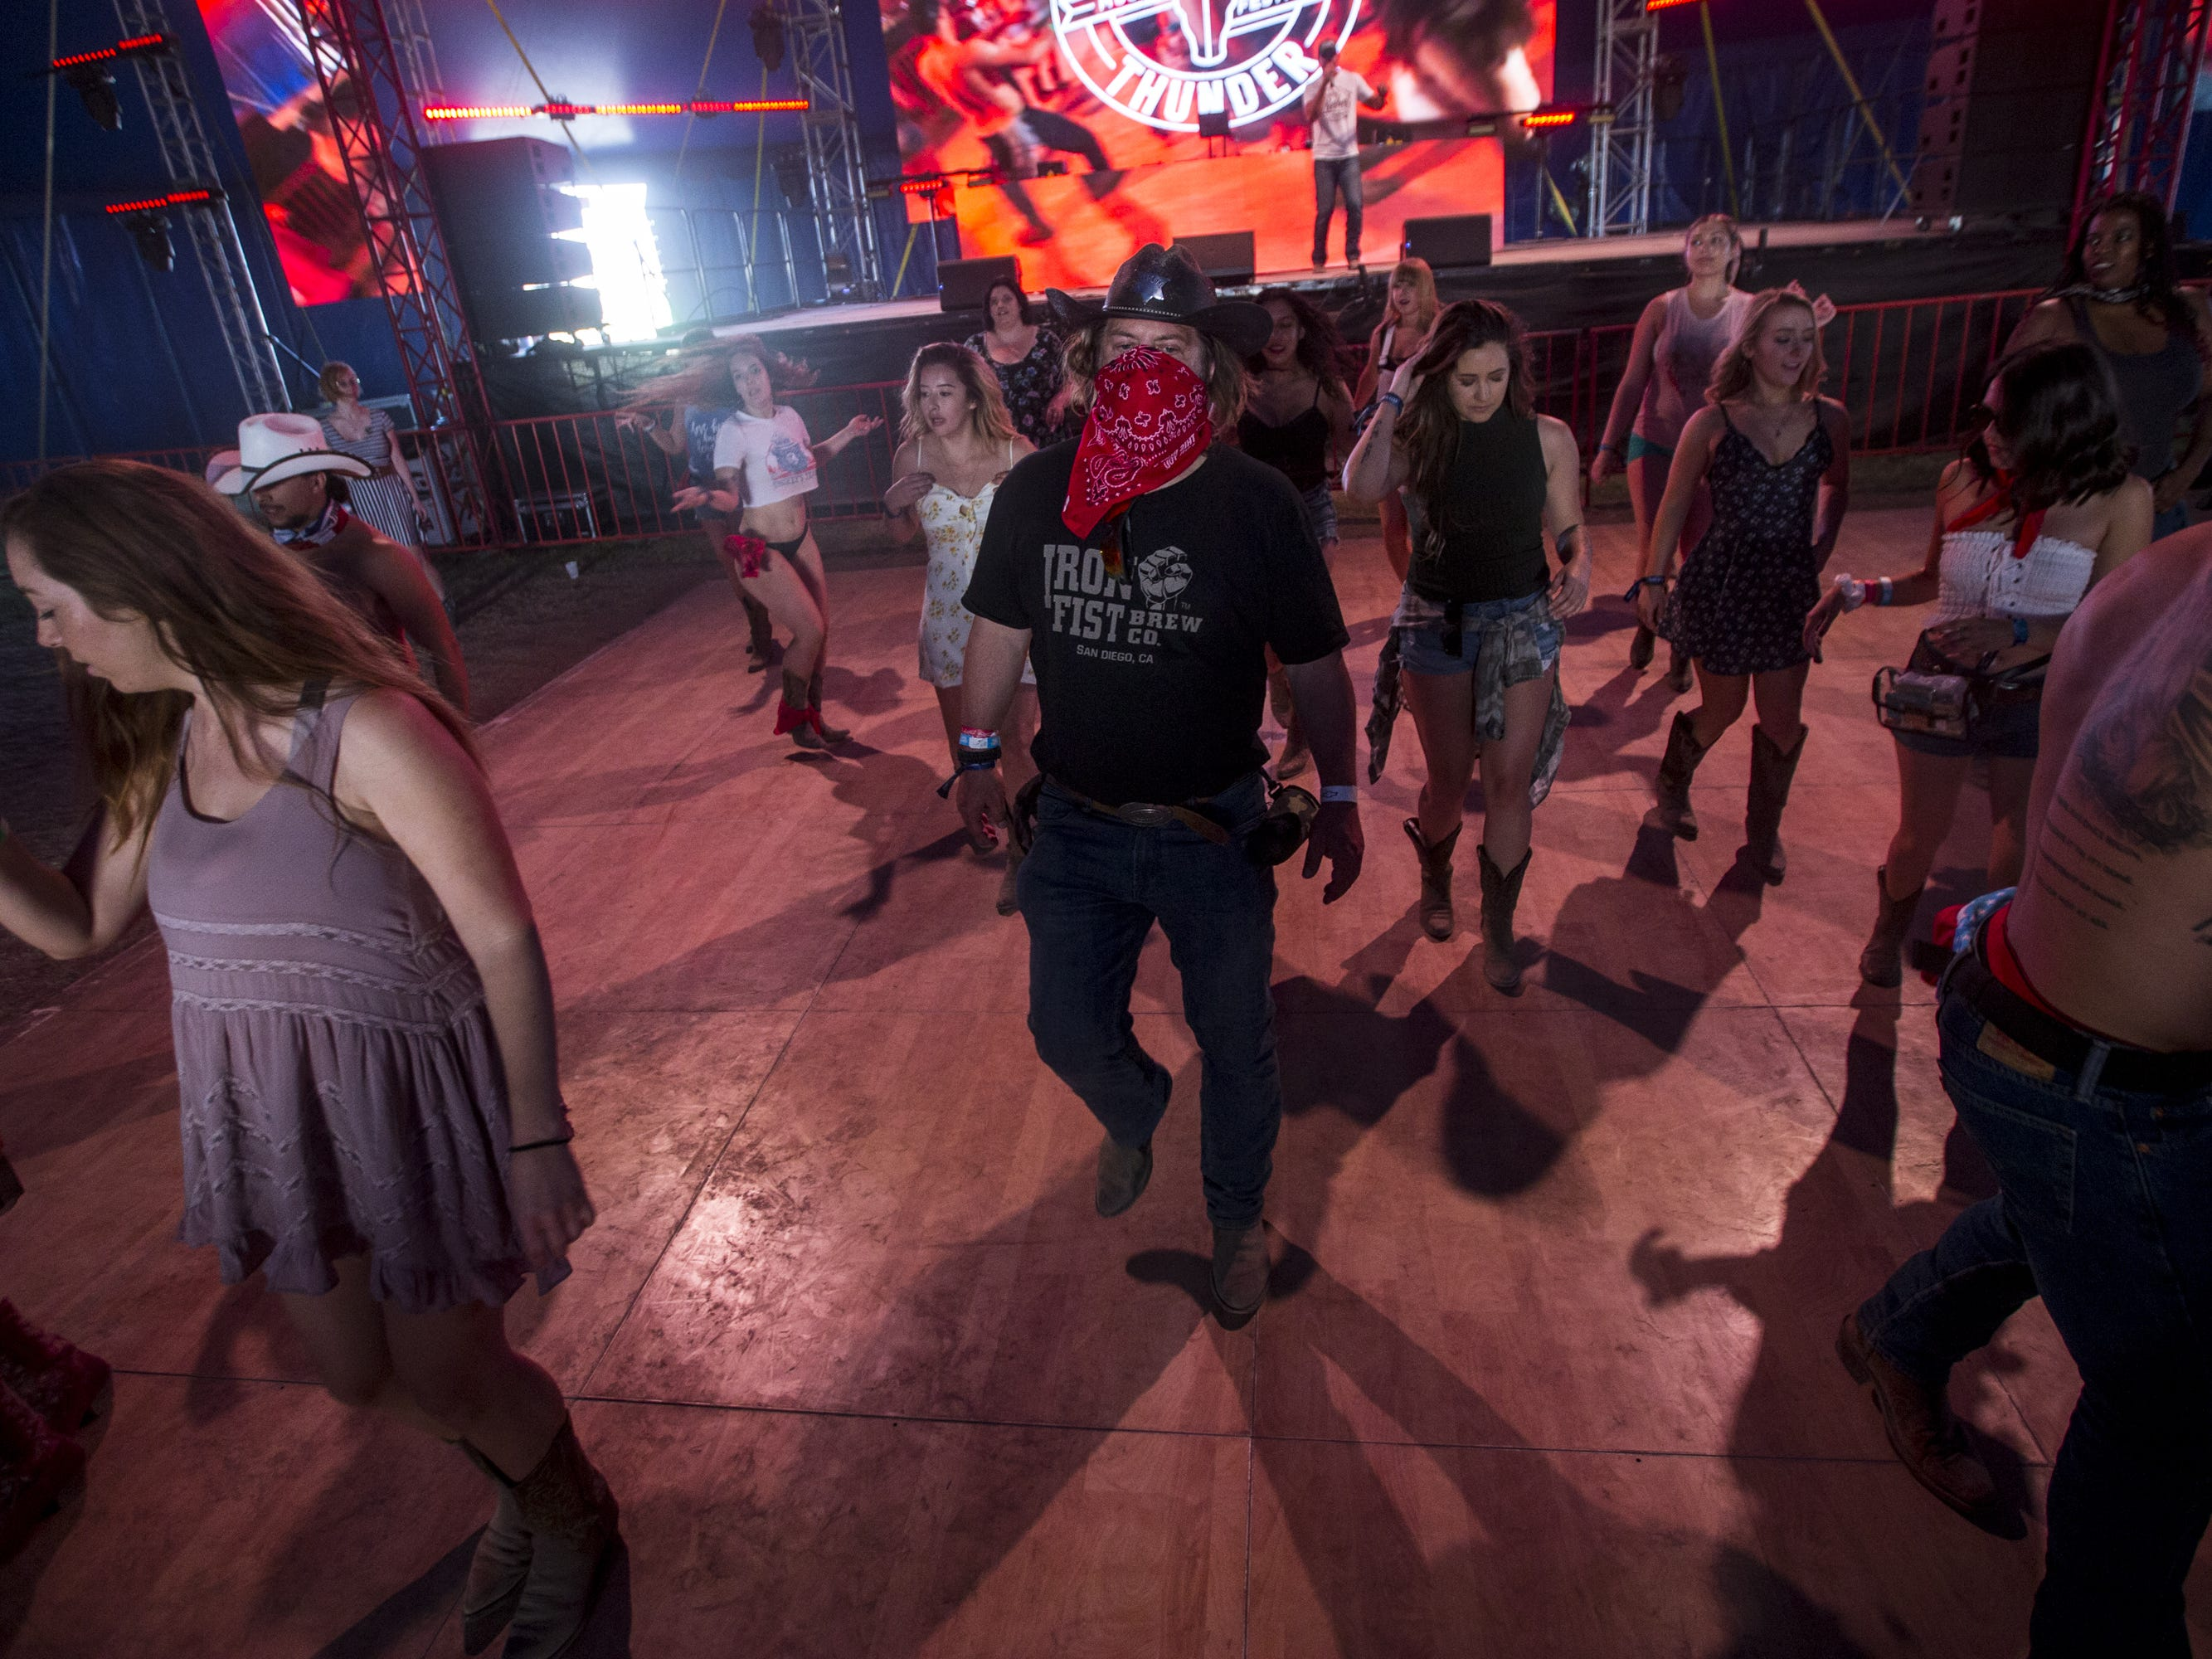 Festival-goers dance on Sunday, April 14, 2019, during Day 4 of Country Thunder Arizona in Florence, Ariz.